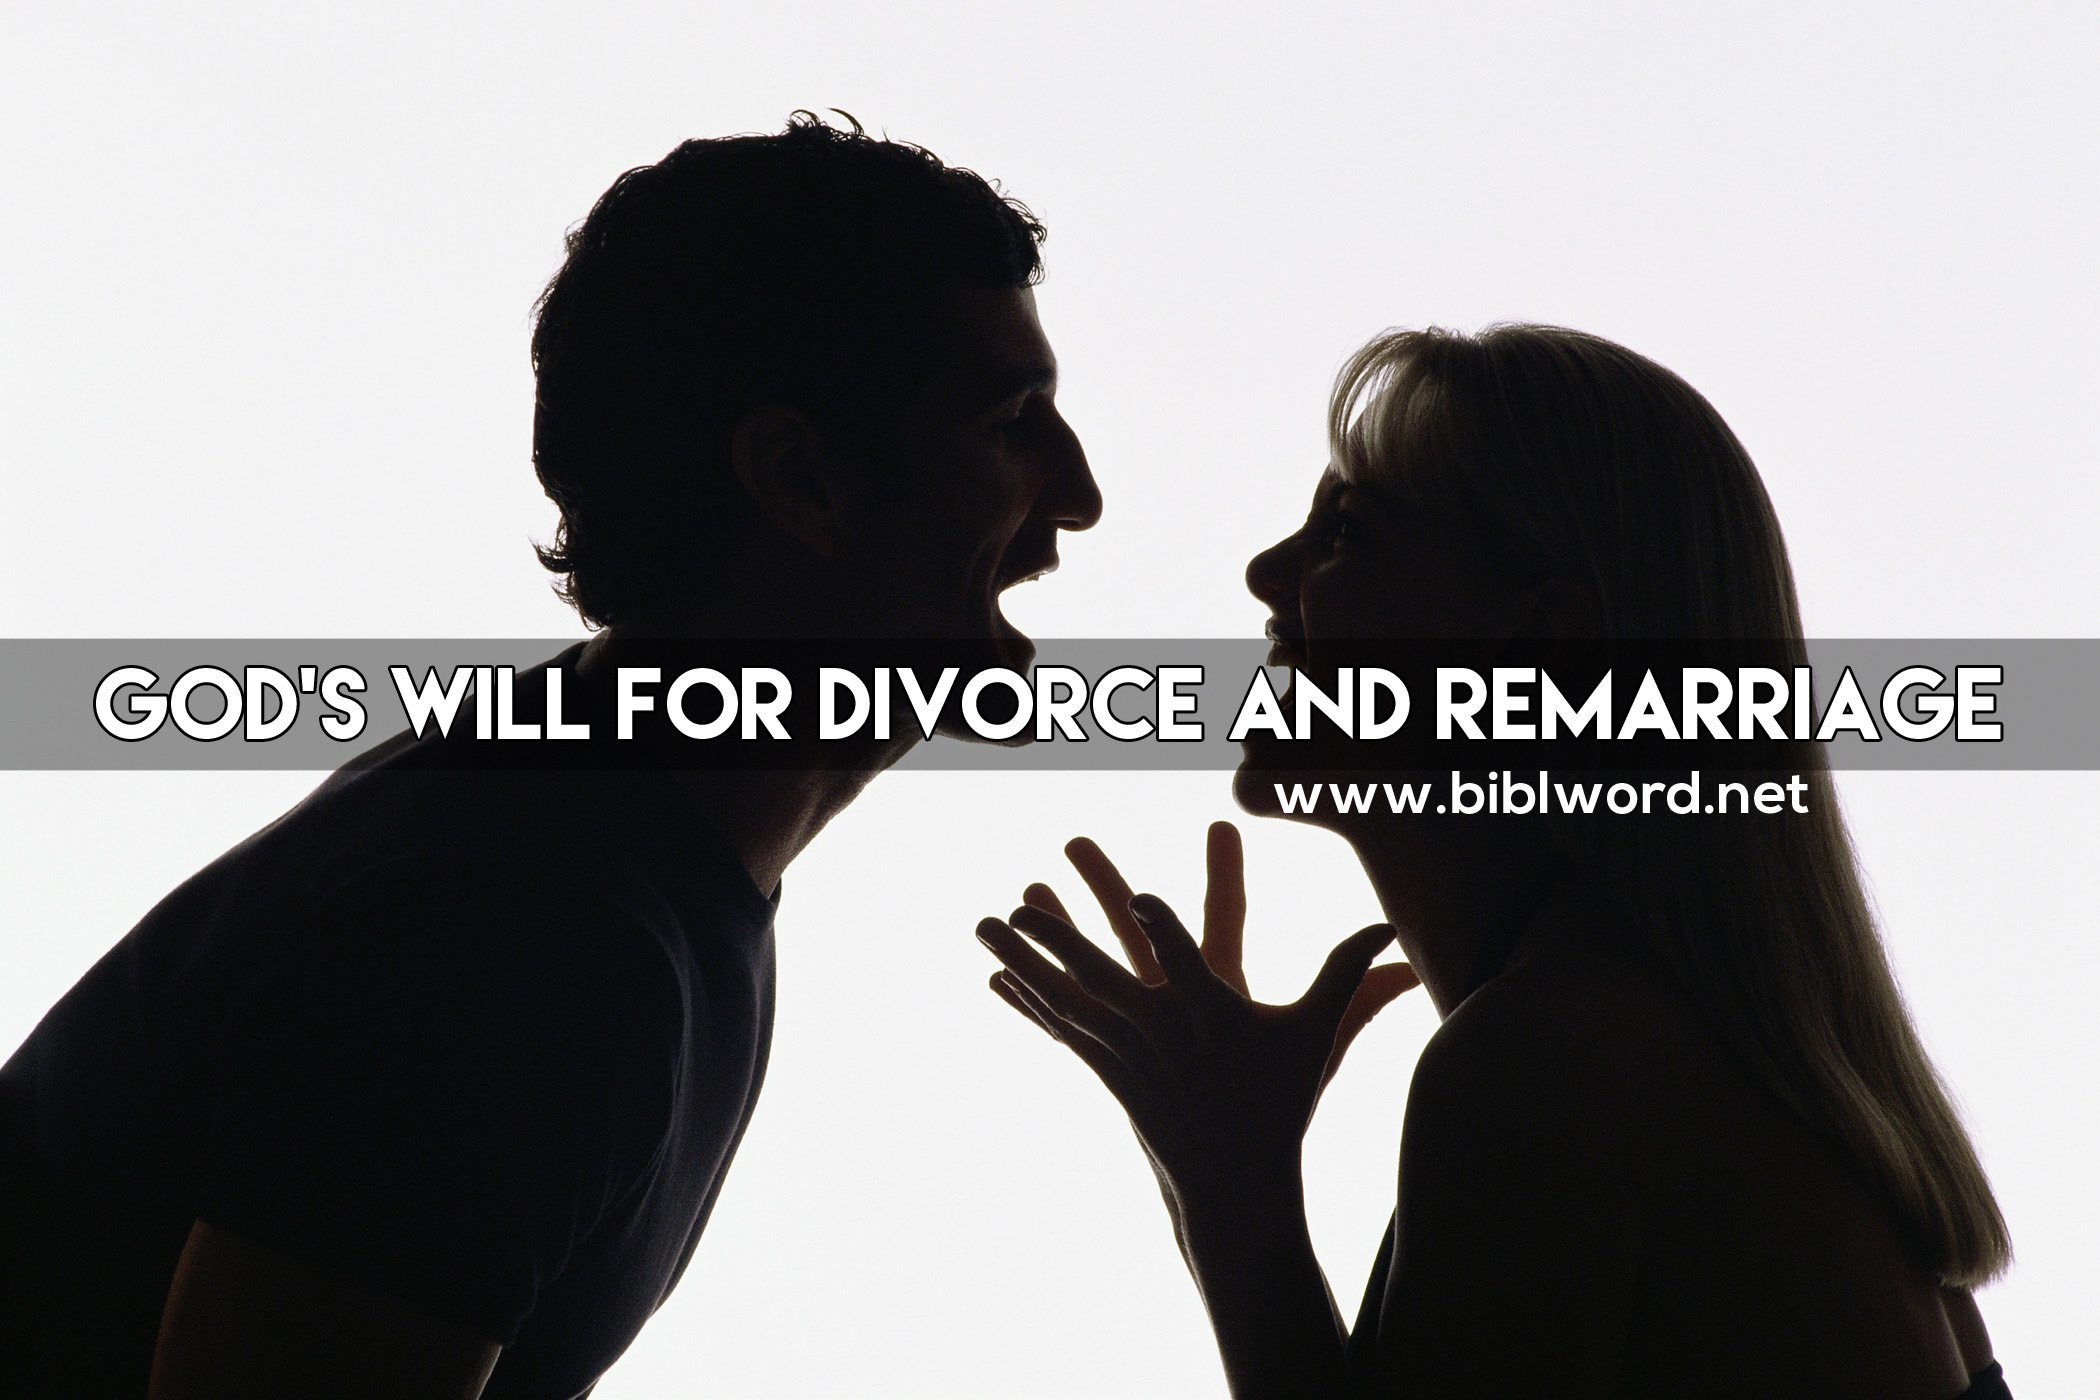 God's Will for Divorce and Remarriage